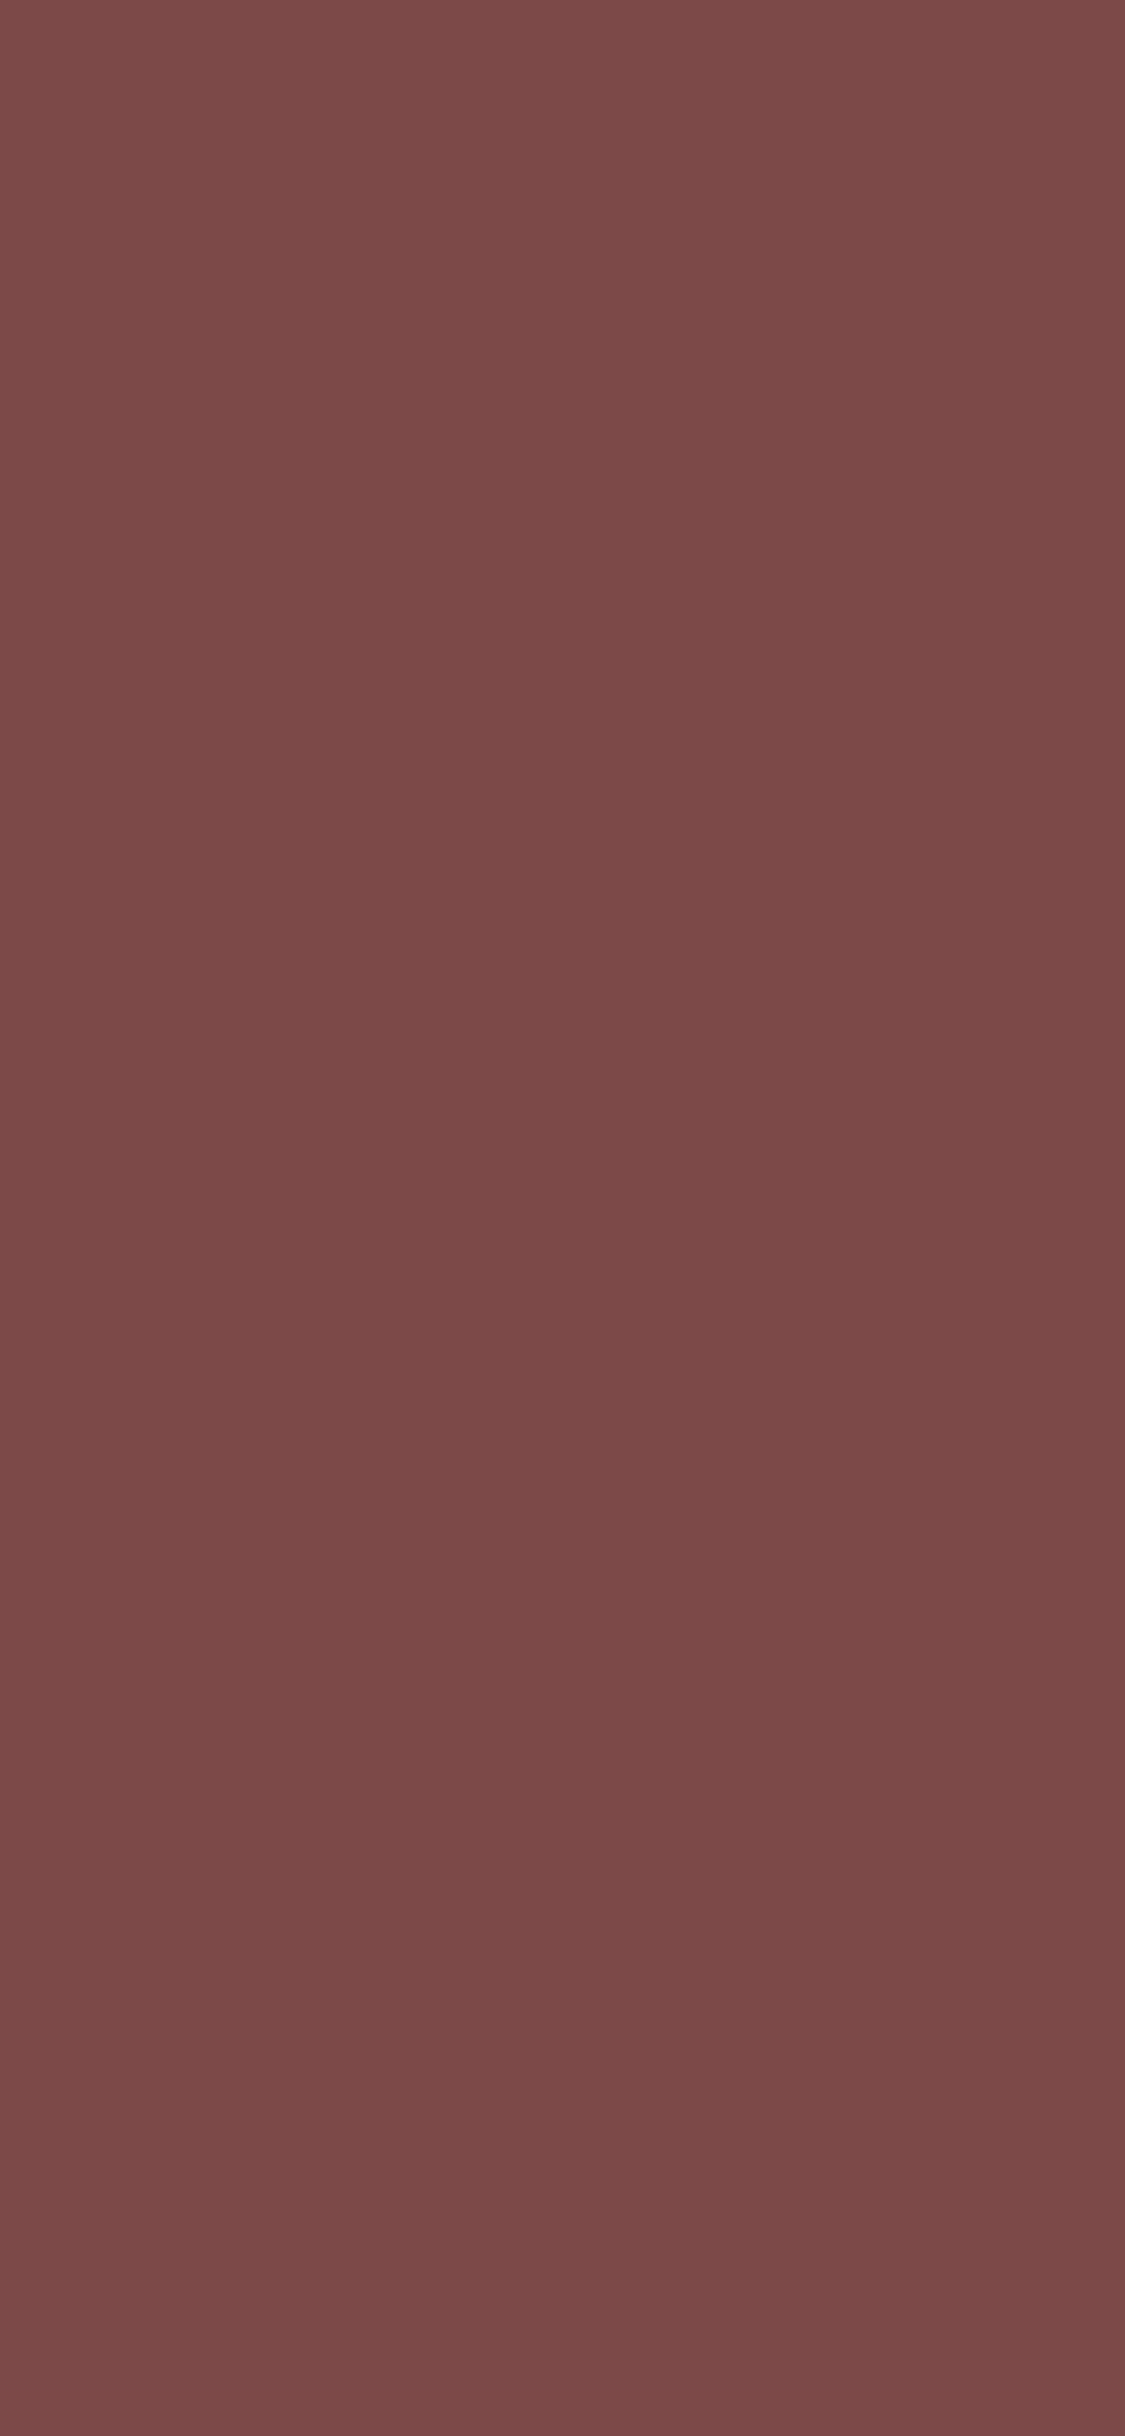 1125x2436 Tuscan Red Solid Color Background